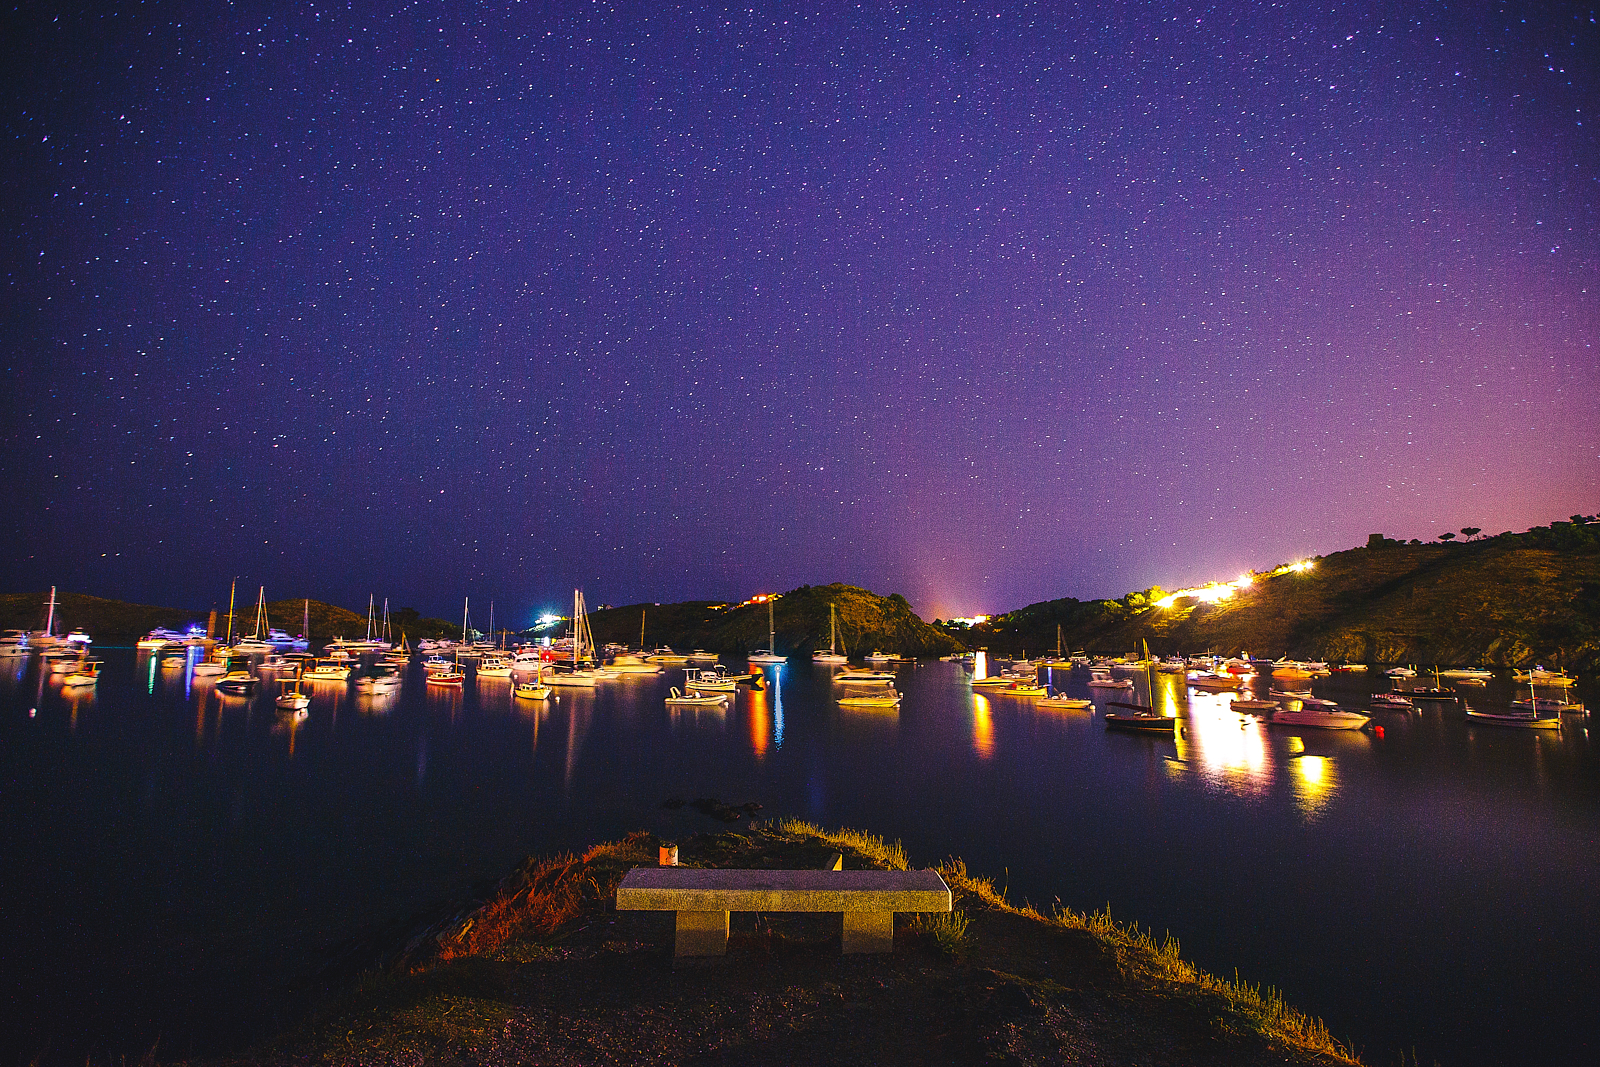 night star sky on the yachts bay in Cadaques, Spain.jpg